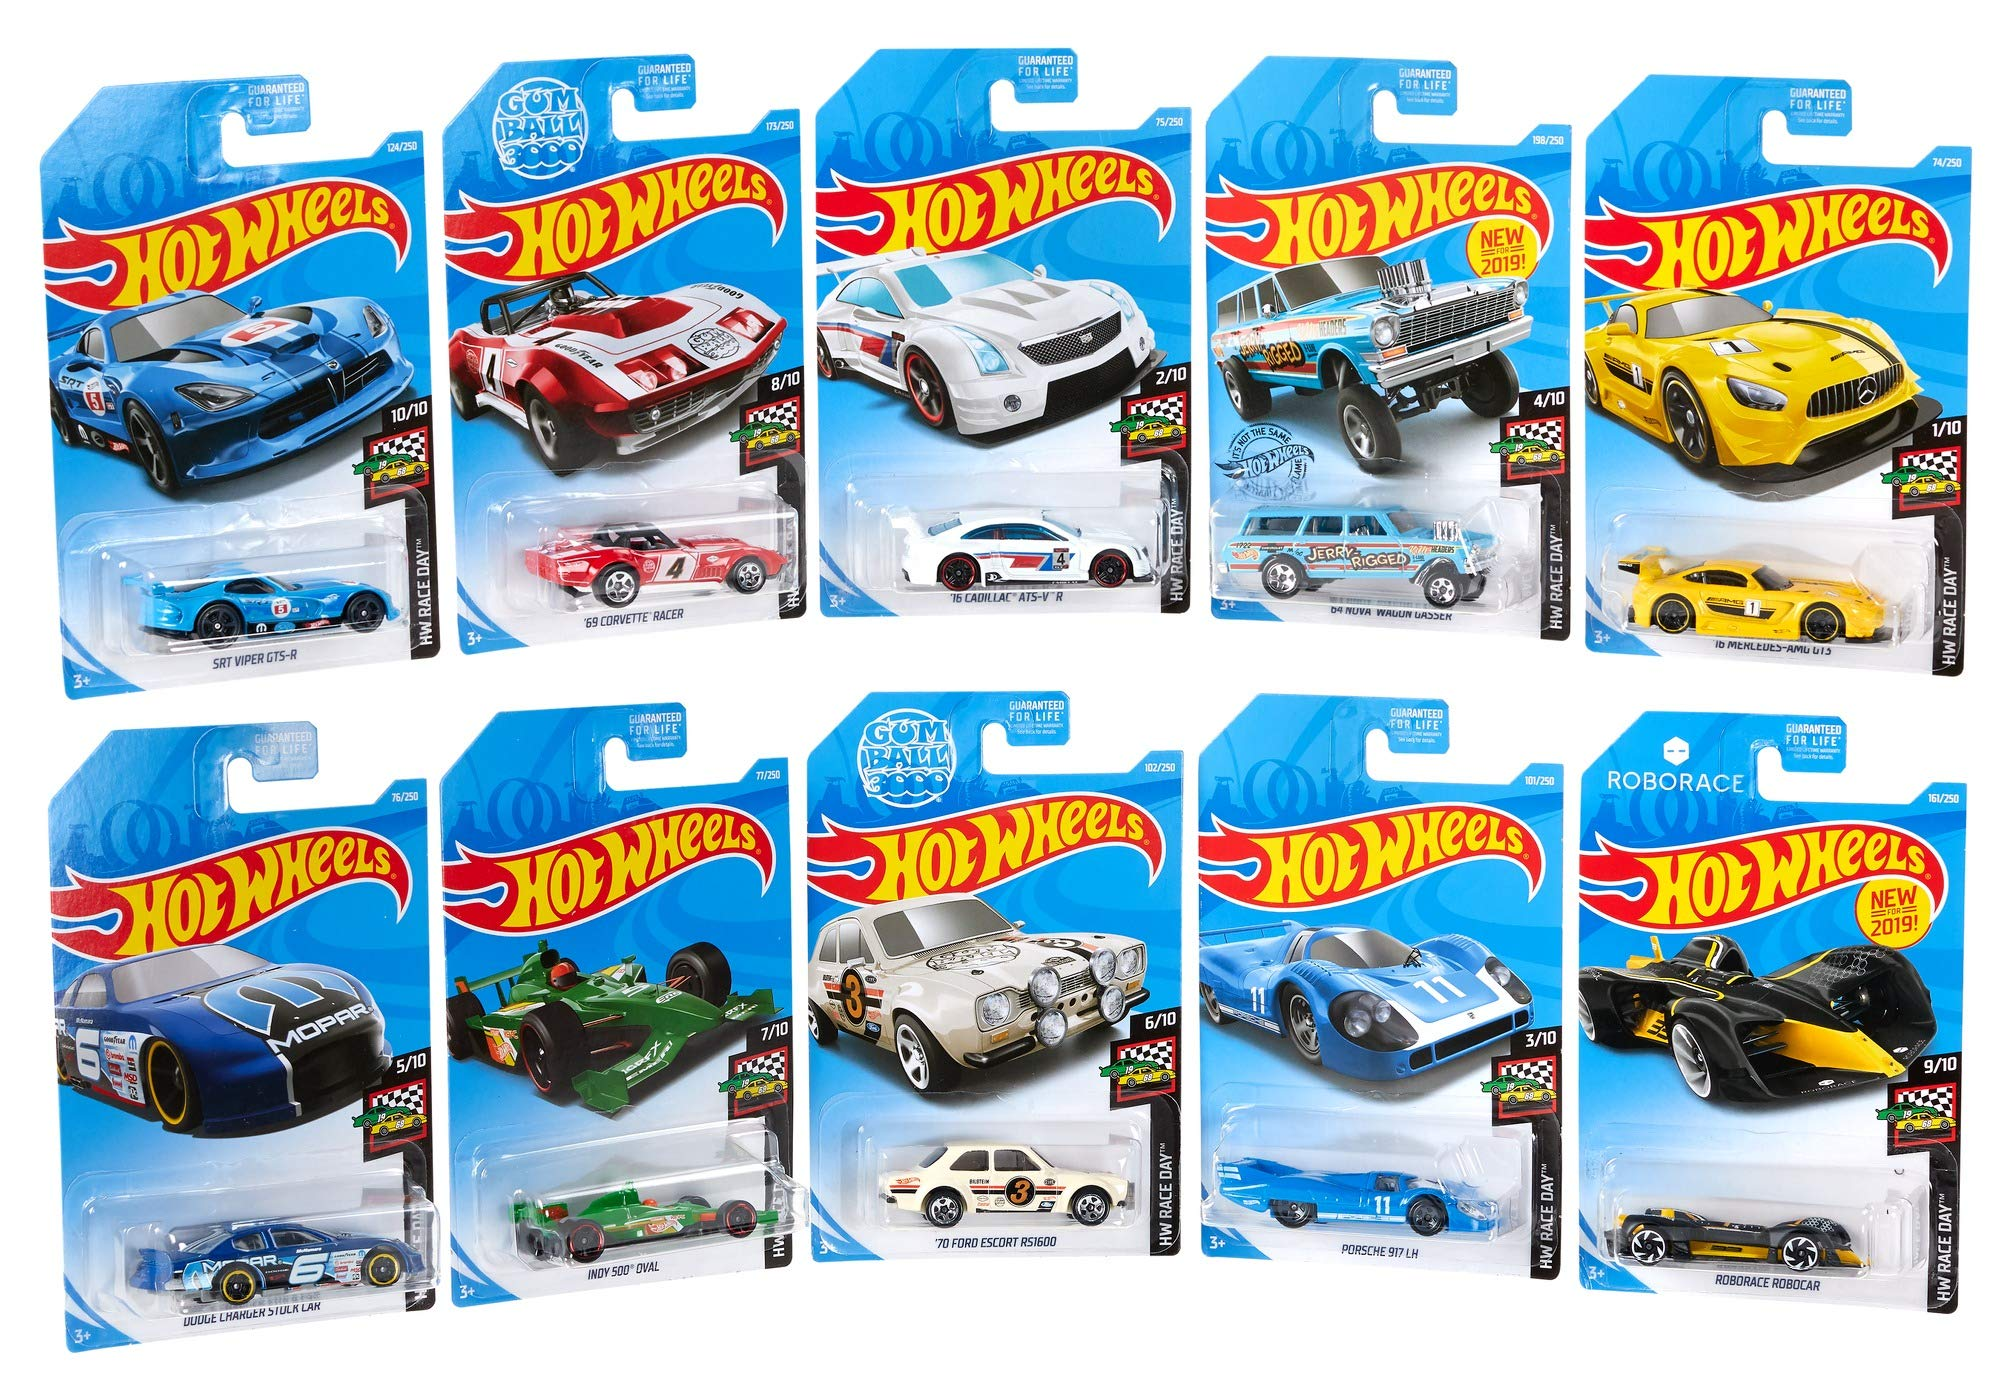 Hot Wheels GJK03 10 Car Pack Mini Collection